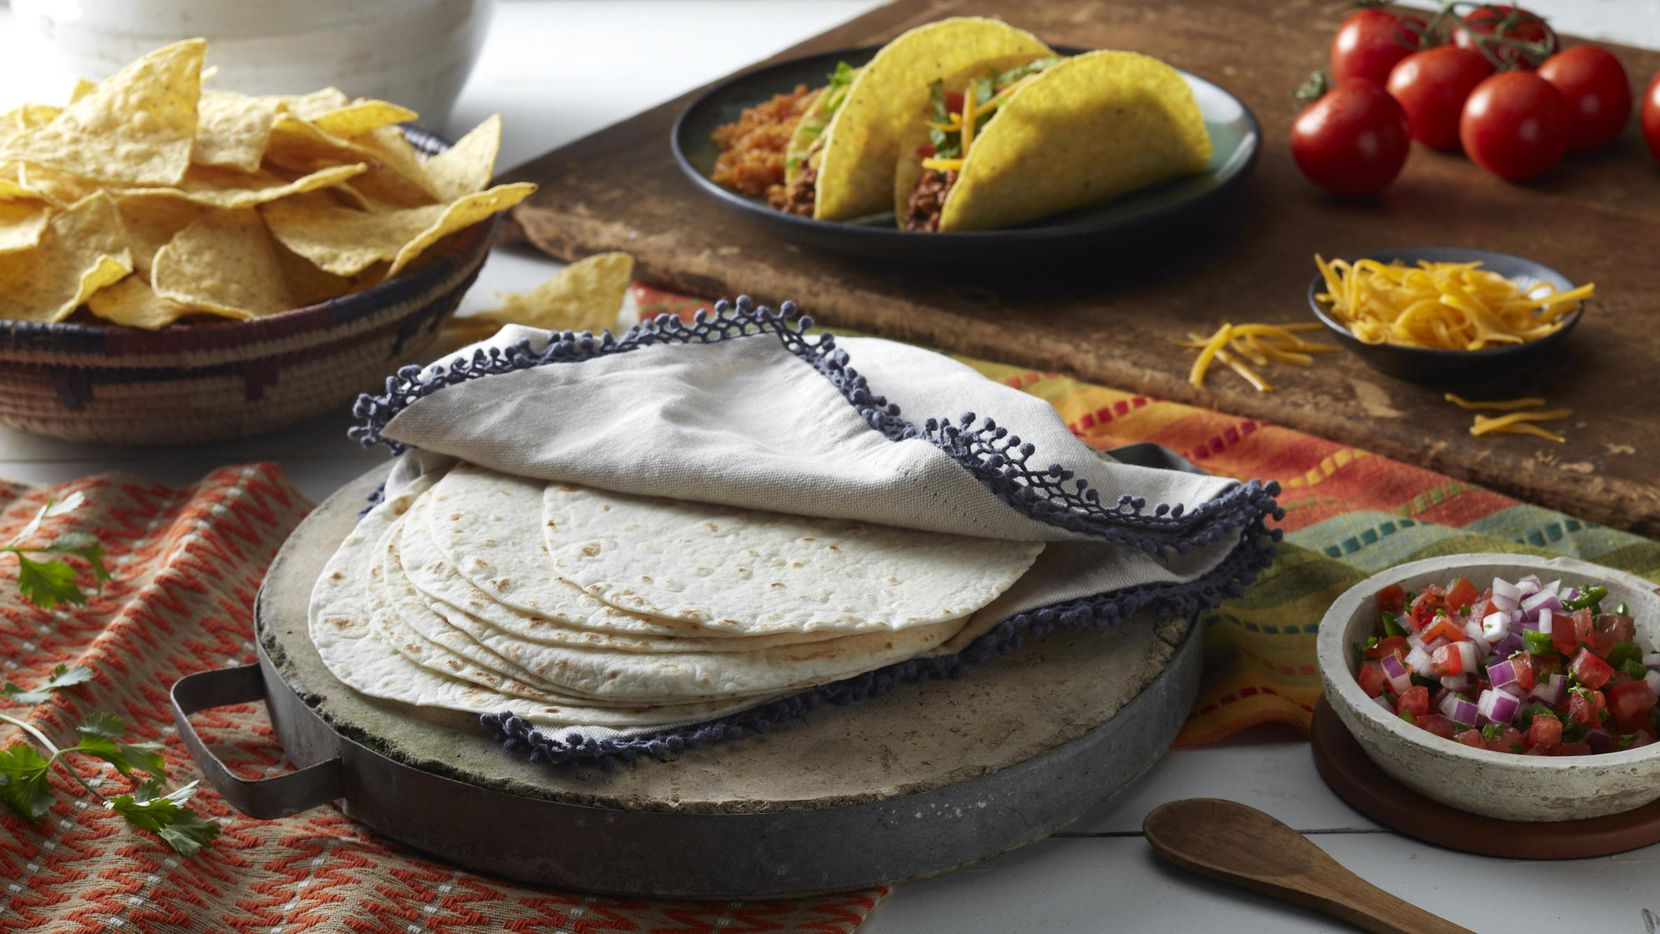 Productos de Rudy's Tortillas de Dallas.((Cortesia: Teasdale Latin Foods))